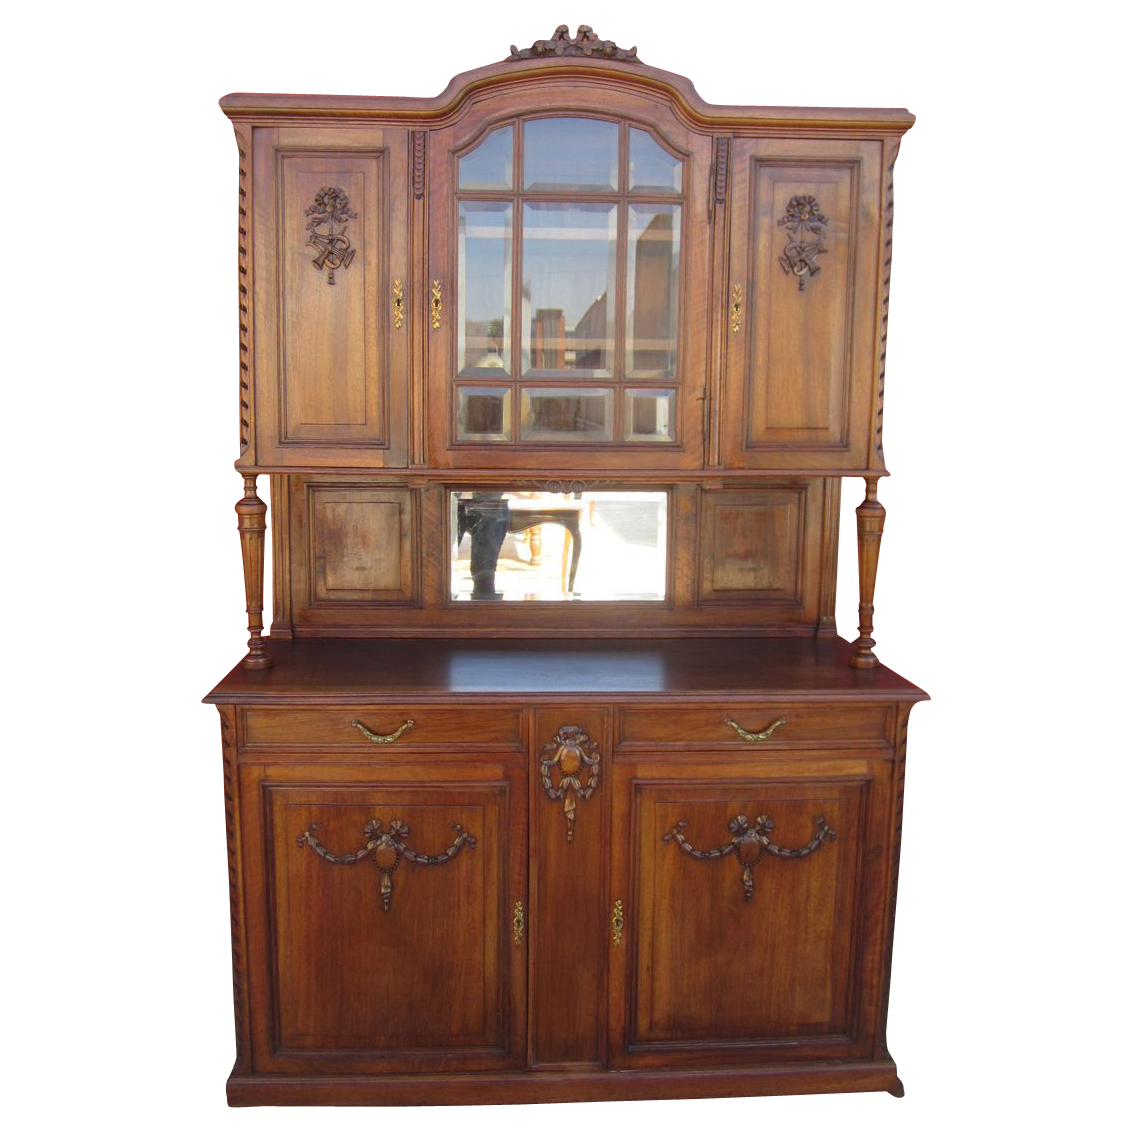 French Antique Walnut Hutch China Cabinet Antique Furniture - French Antique Walnut Hutch China Cabinet Antique Furniture For